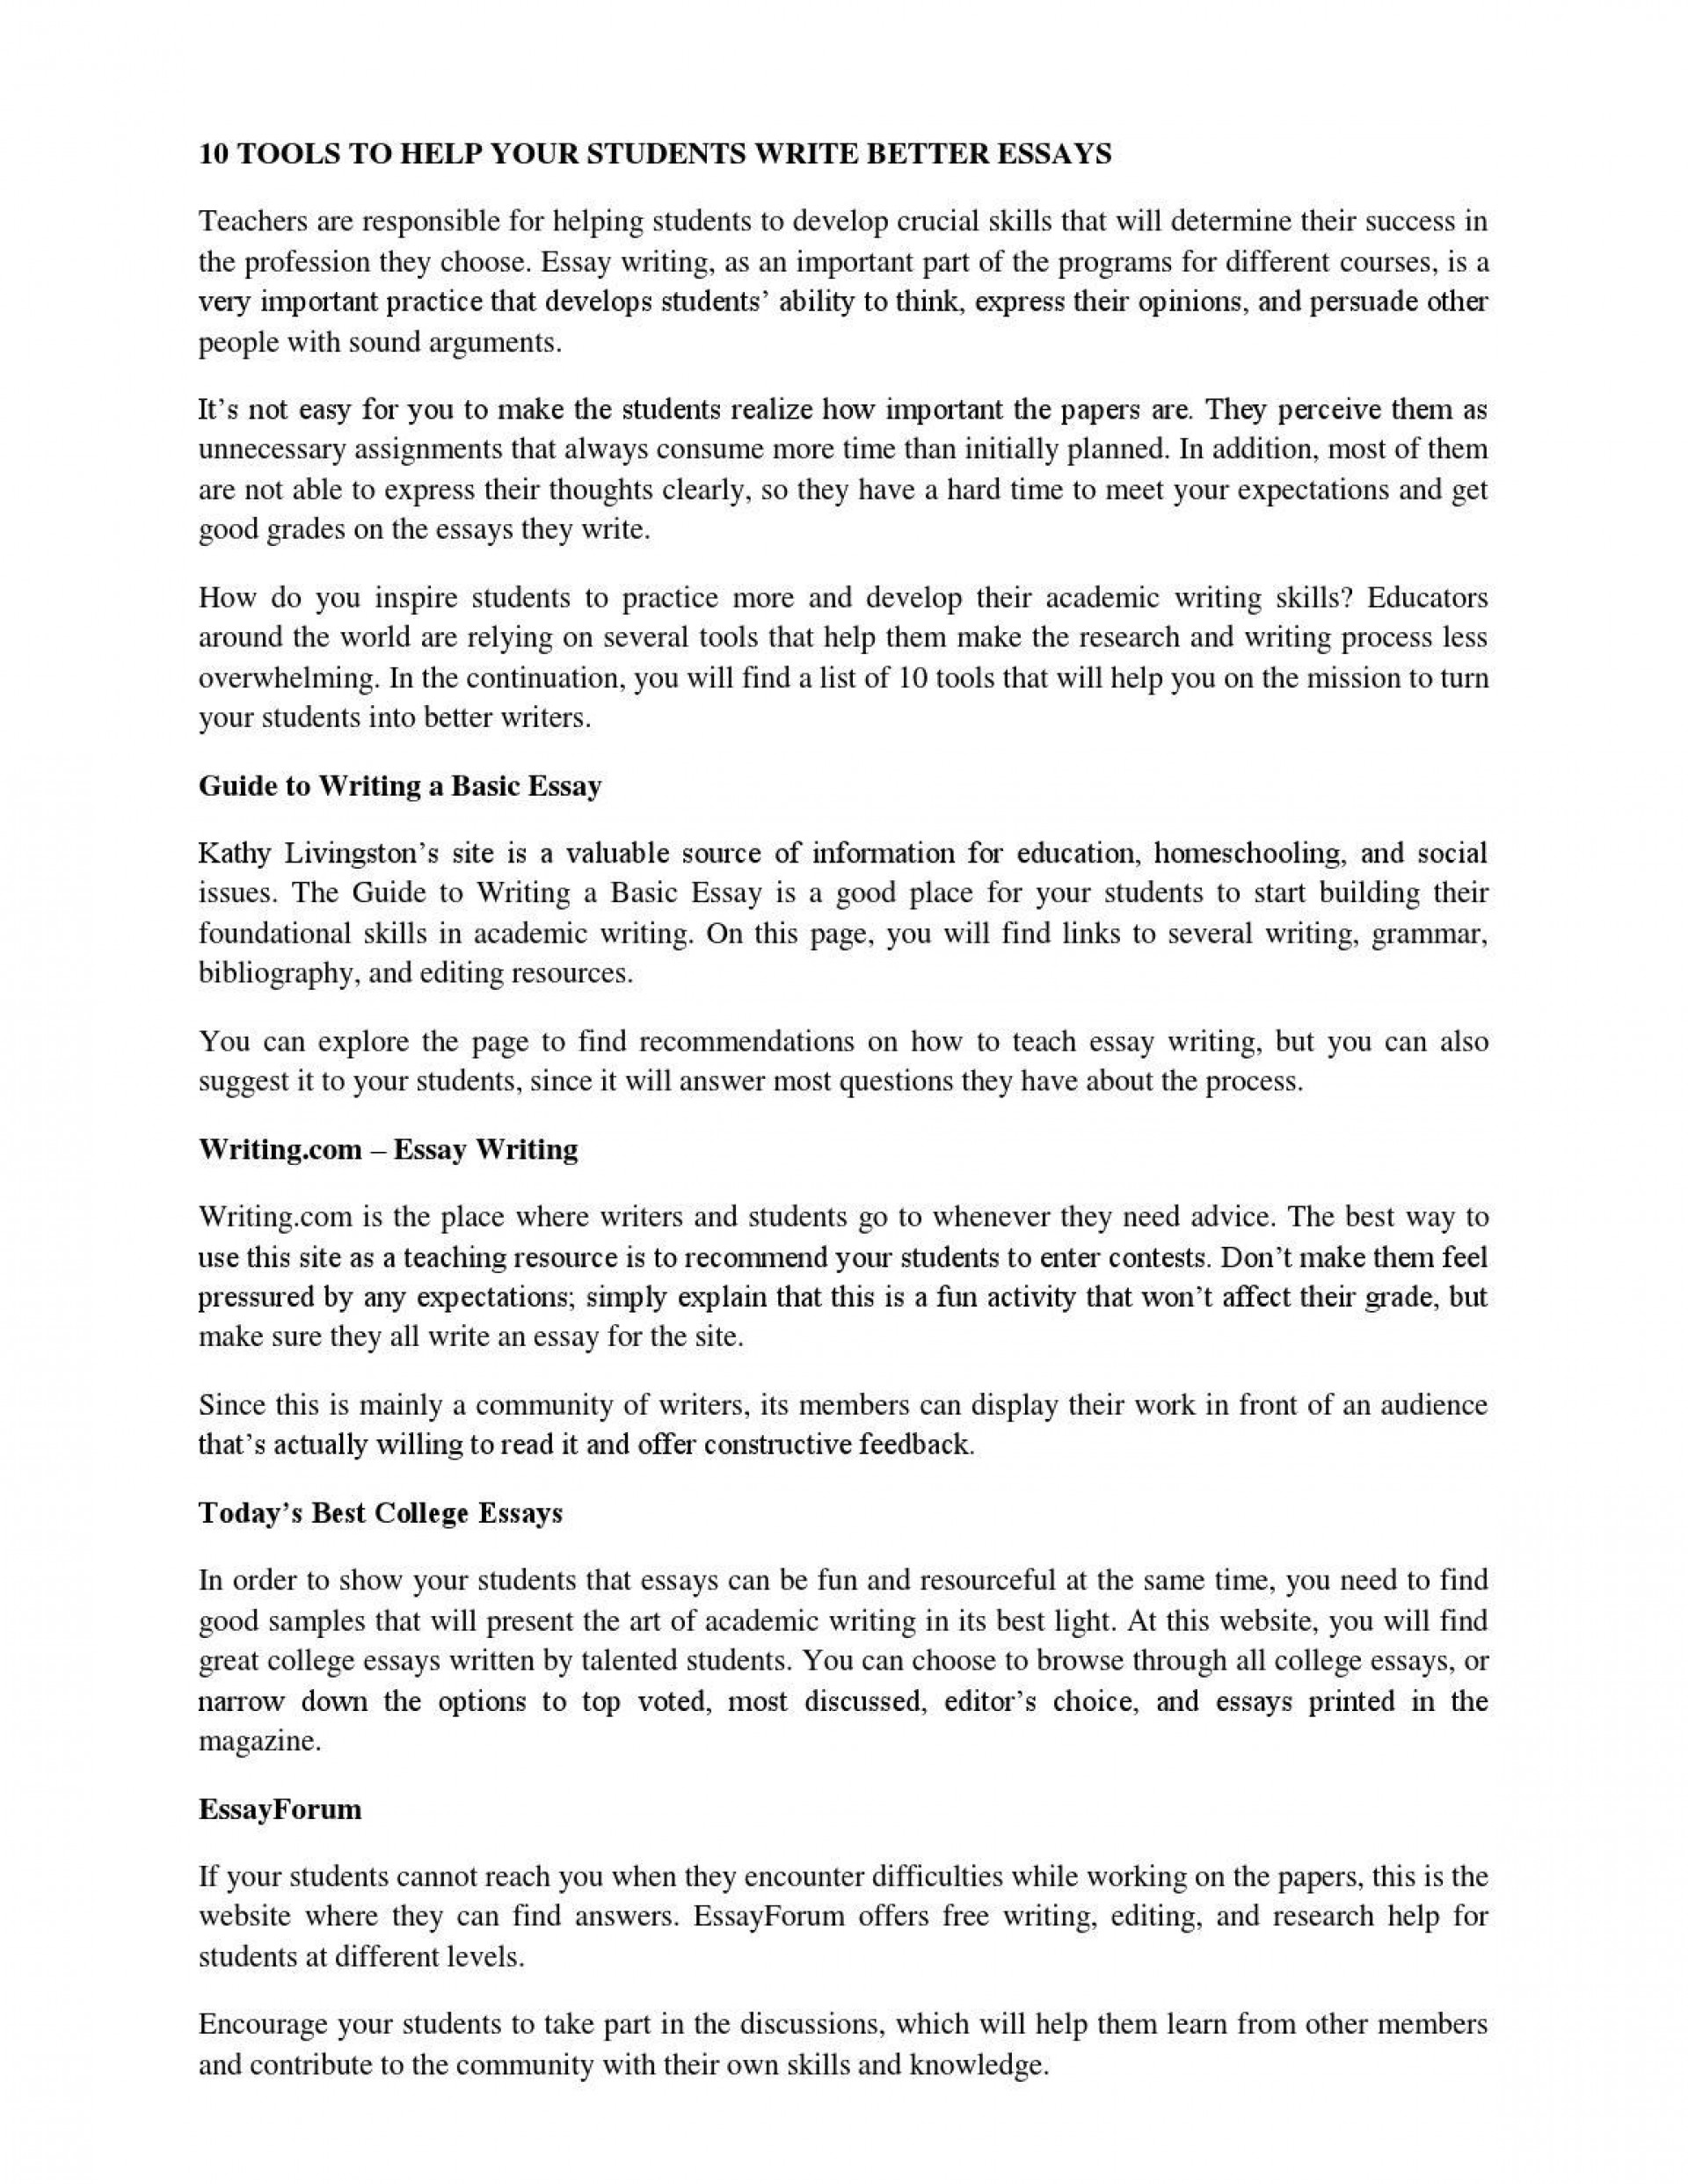 017 Research Paper Online Papers Free Essay Writing Websites Reviews For Students Editing Page Example Fearsome Journals Download Read 1920